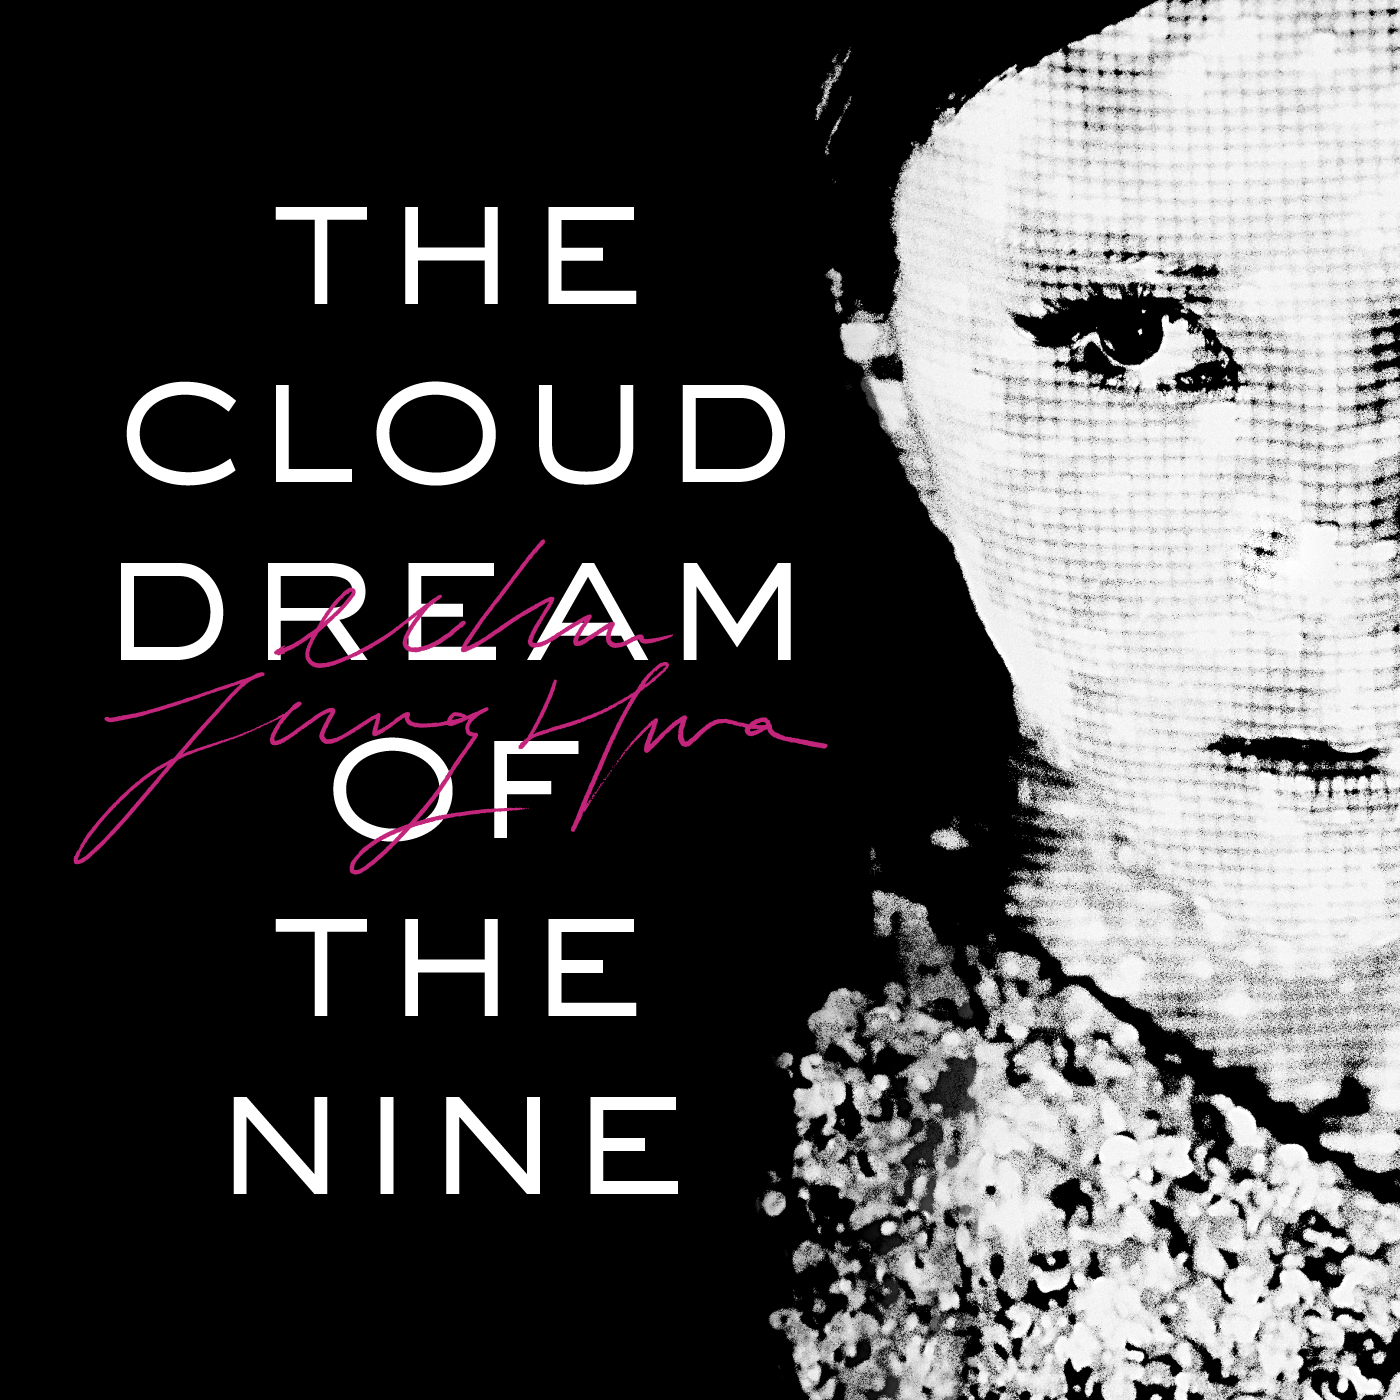 20170417.0809.14 Uhm Jung Hwa - The Cloud Dream of the Nine cover.jpg